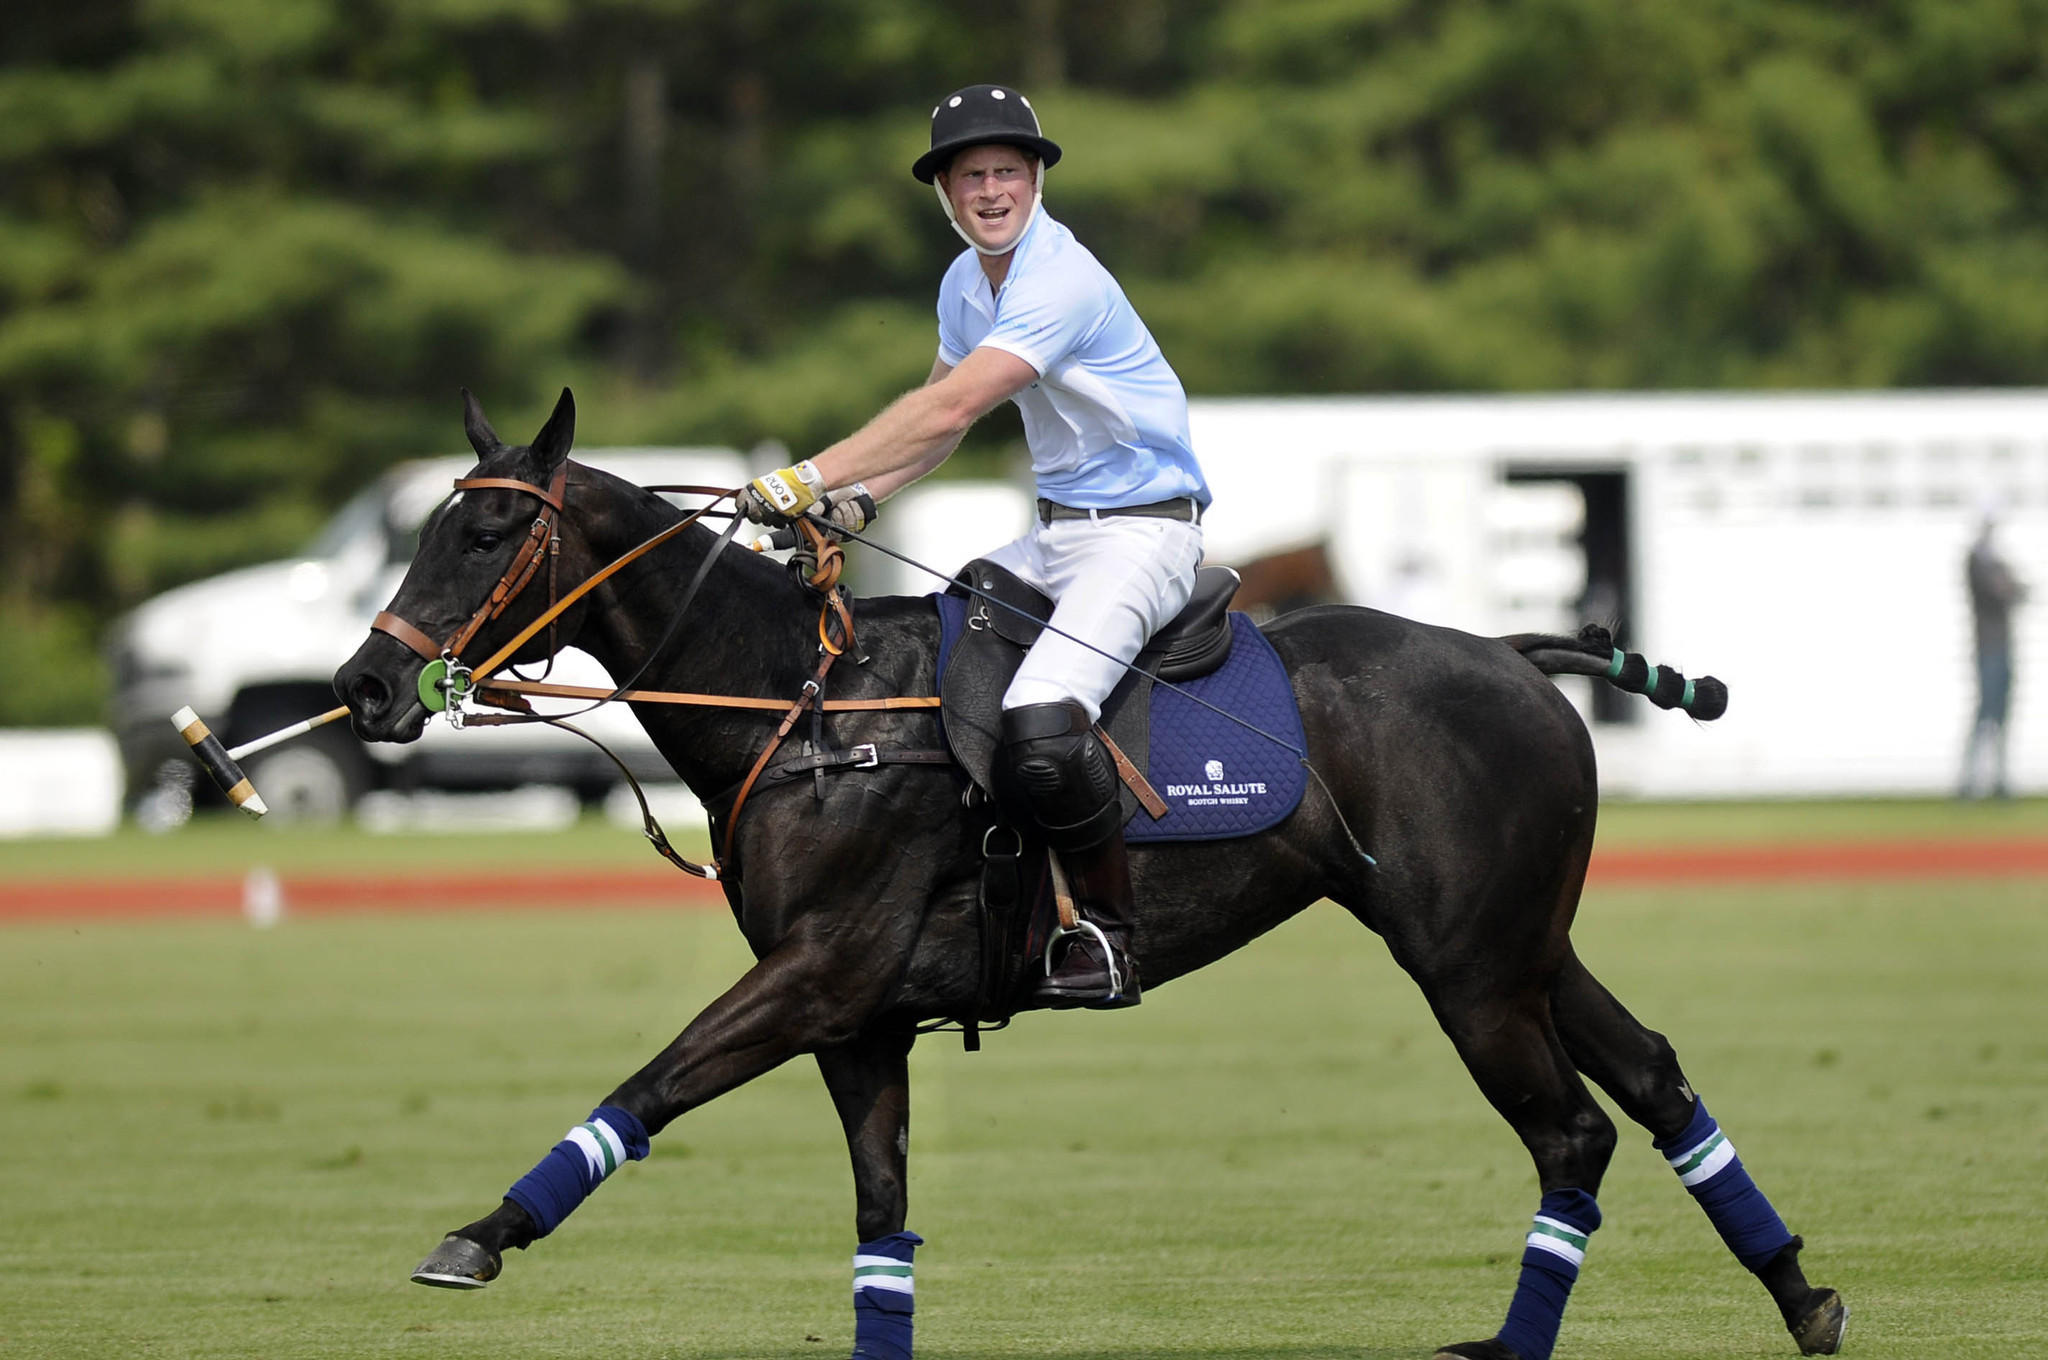 Polo Club Hartford